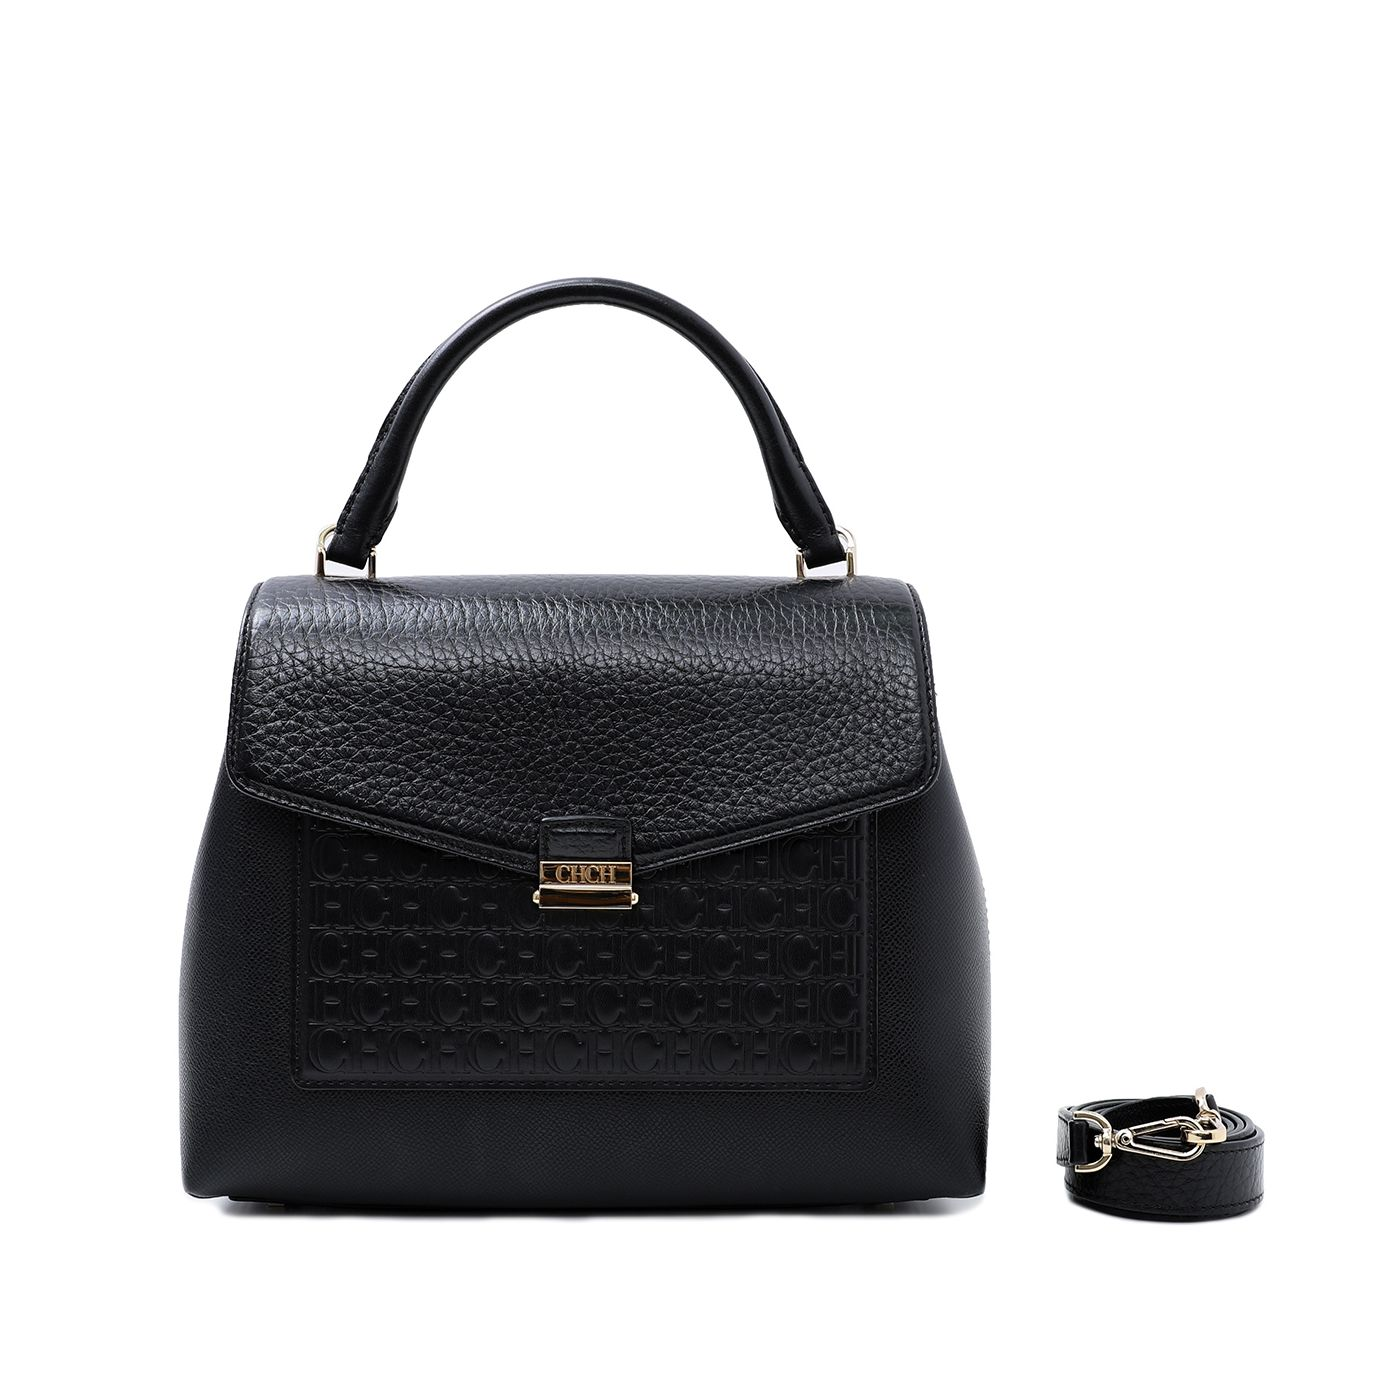 Carolina Herrera Black Monogram Top Handle Bag